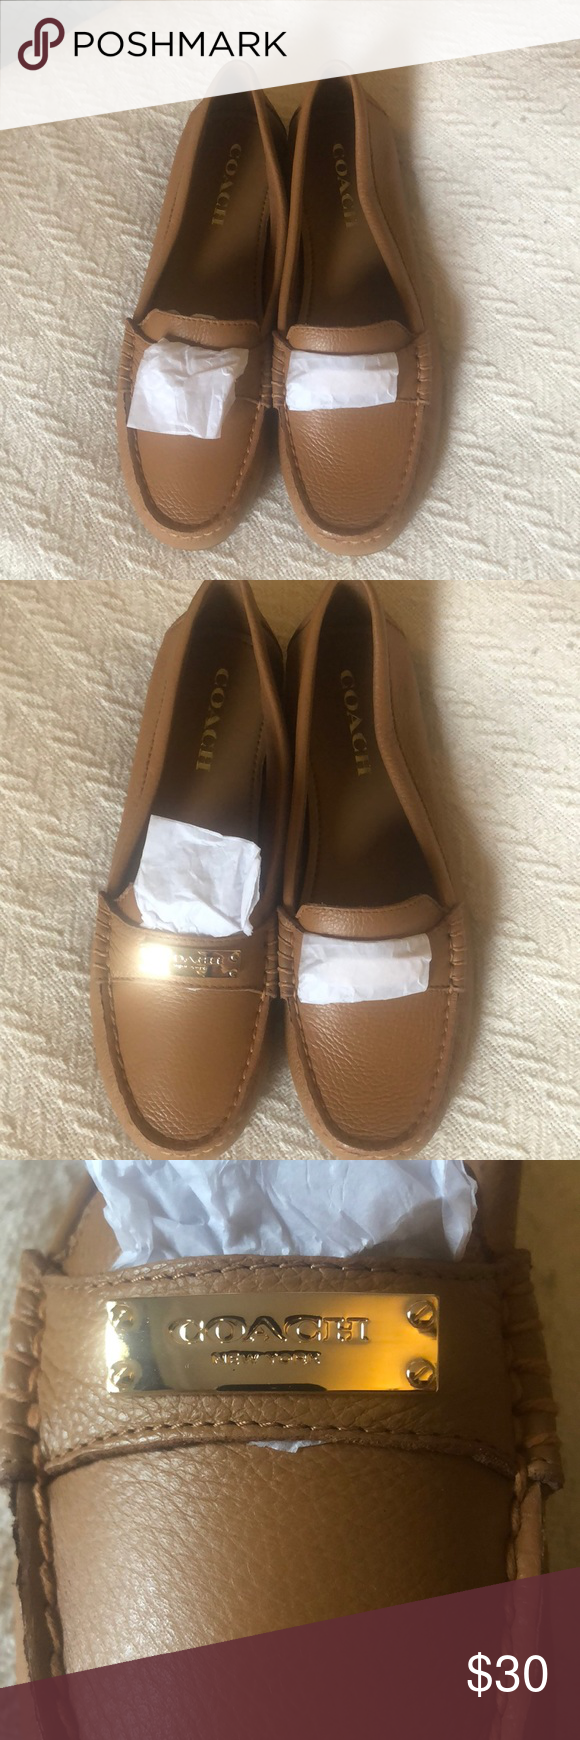 5f05b4e80b9 Coach Loafers Brown Tan Coach Loafers With Gold Detail Size 7.5 Brand New  Never Worn Coach Shoes Flats   Loafers